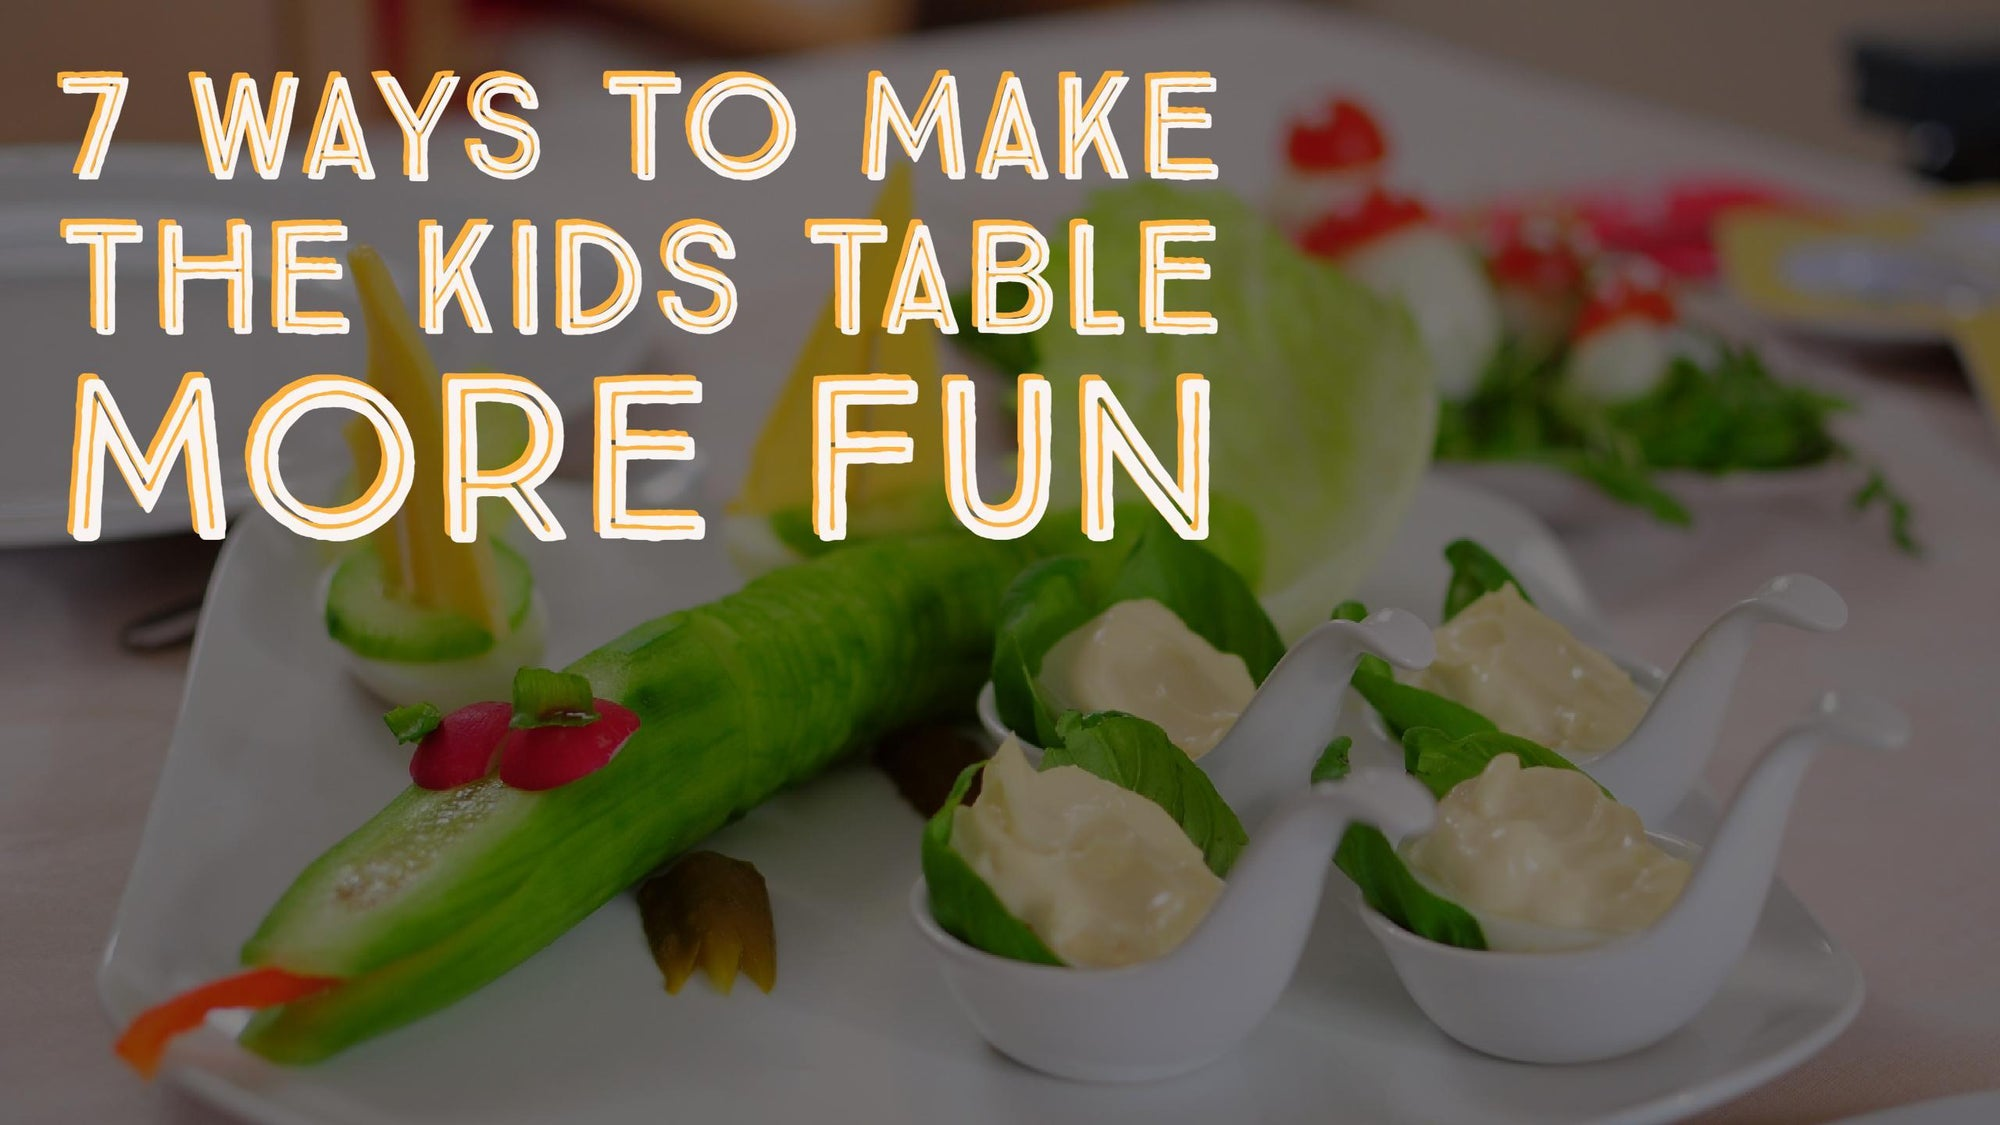 7 Ways to Make the Kids Table a Little More Fun